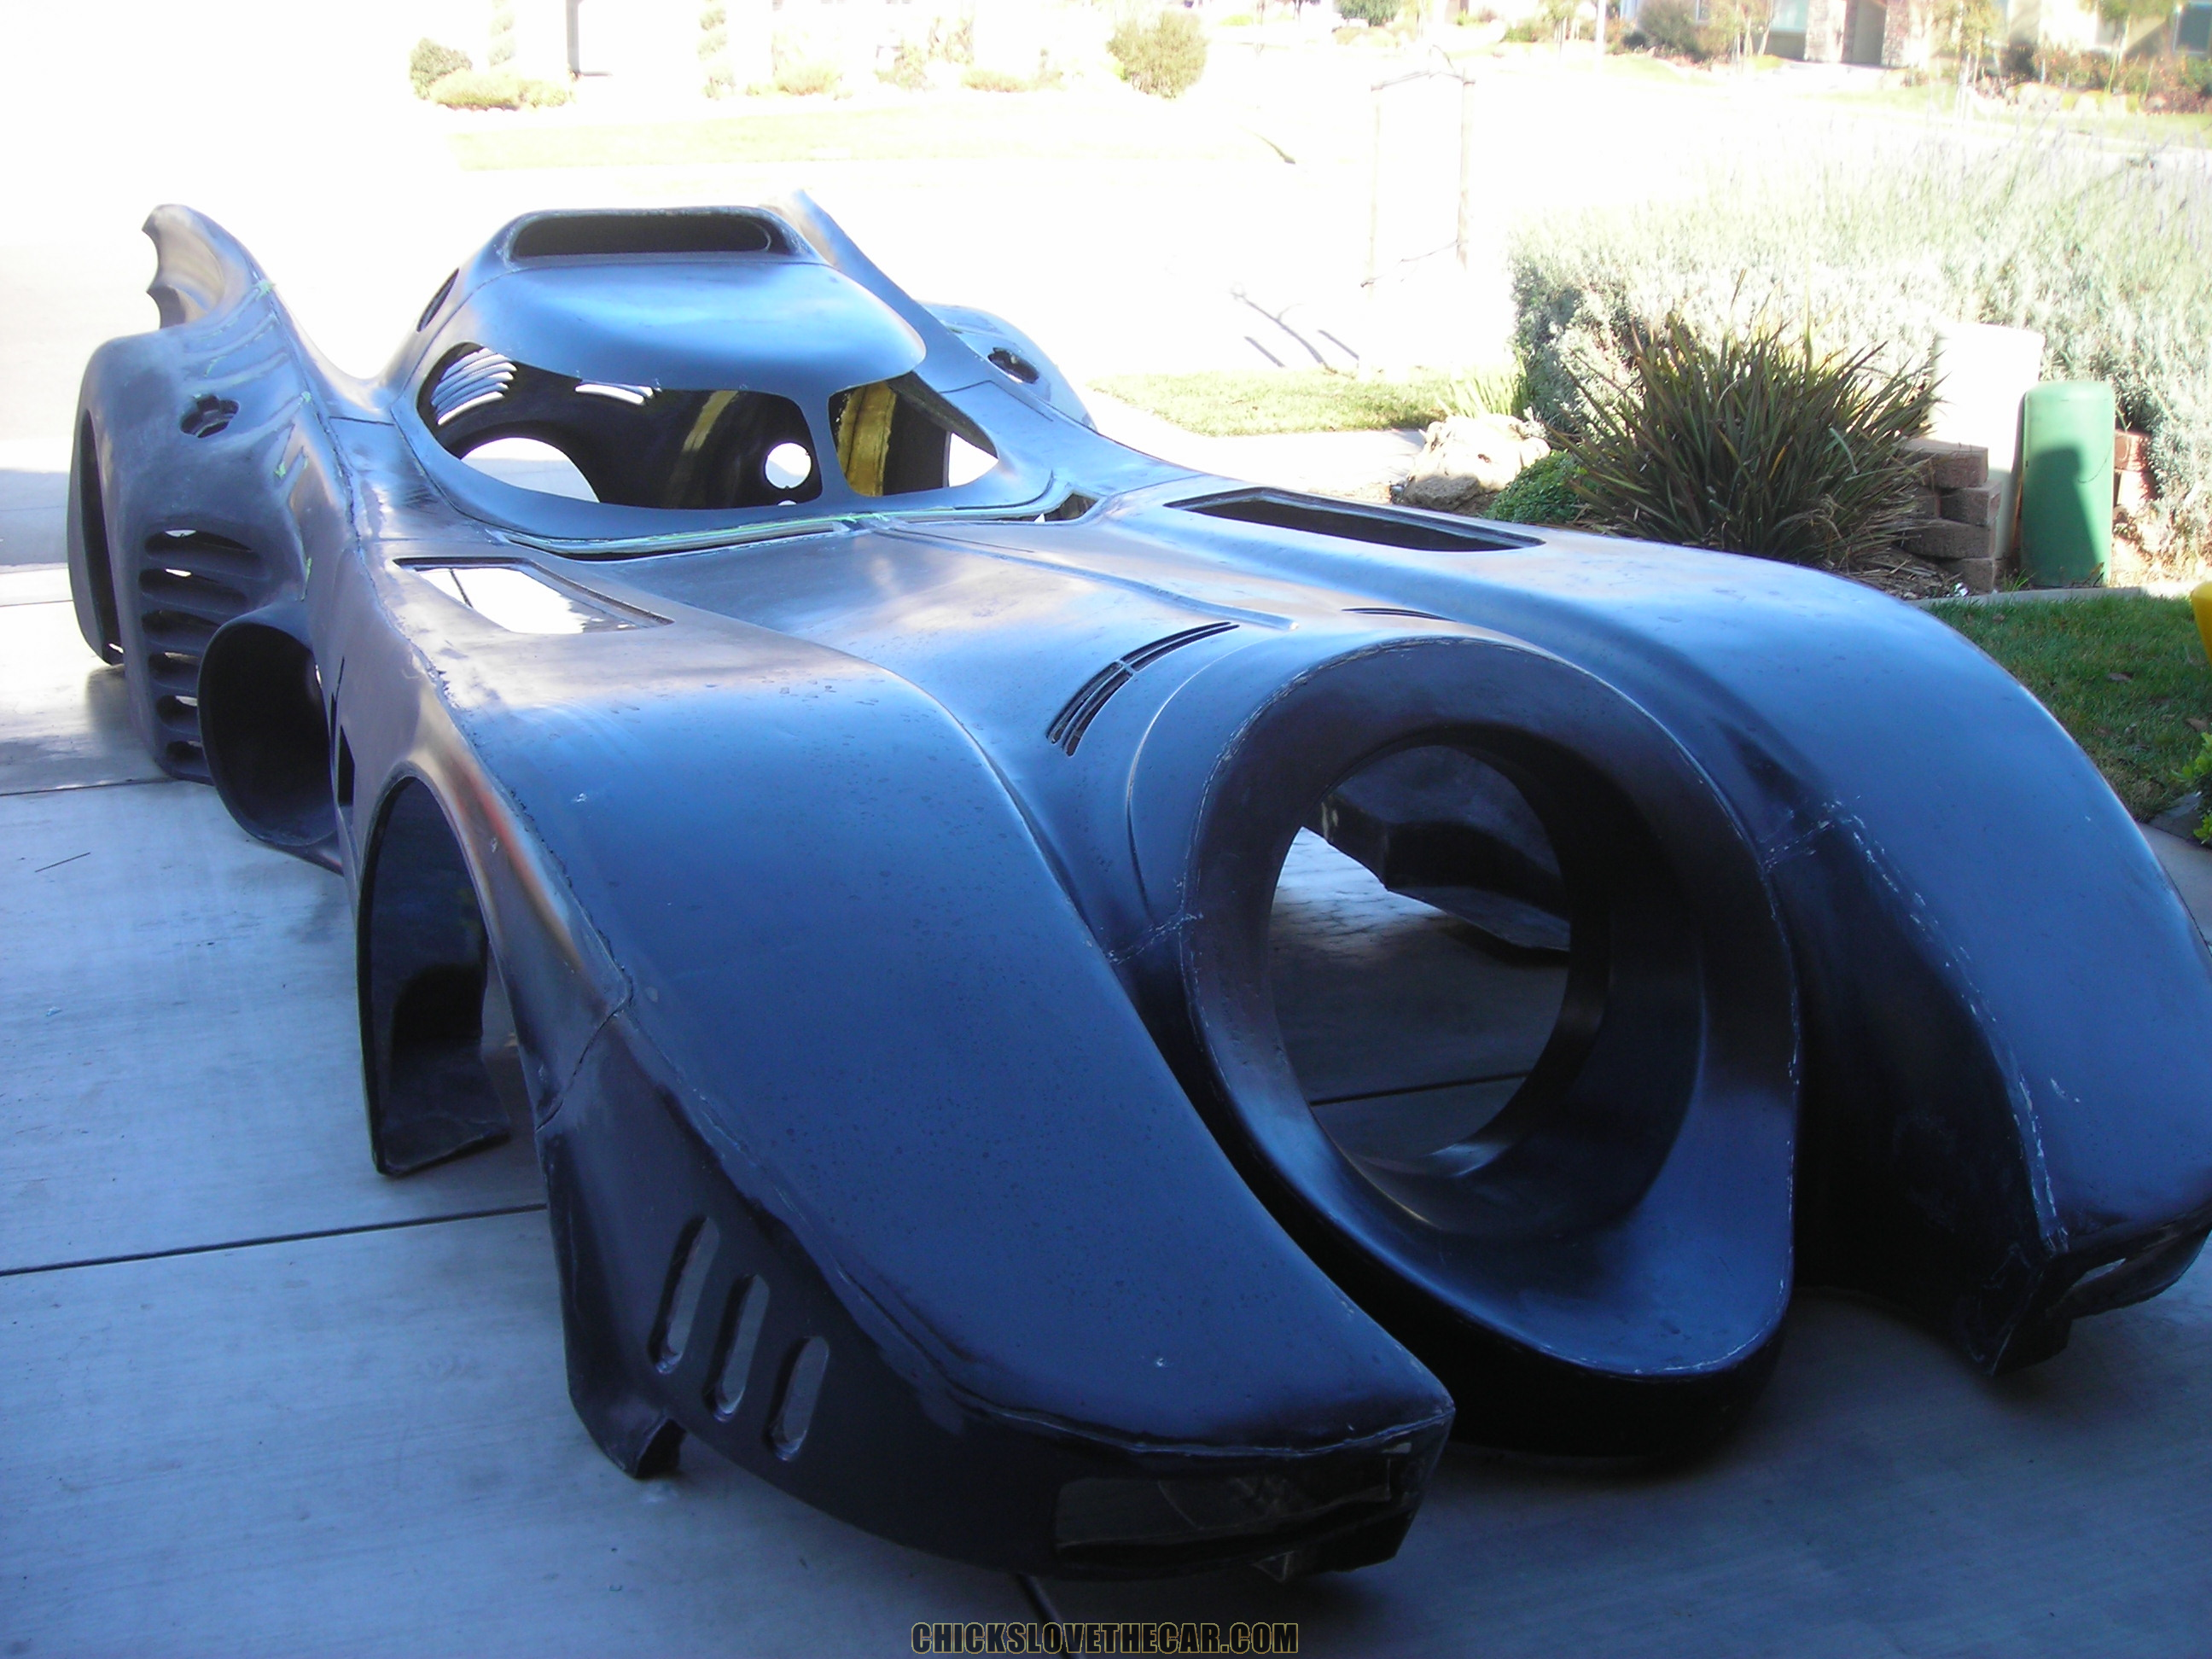 Big Wave Dave's 1989 Batmobile